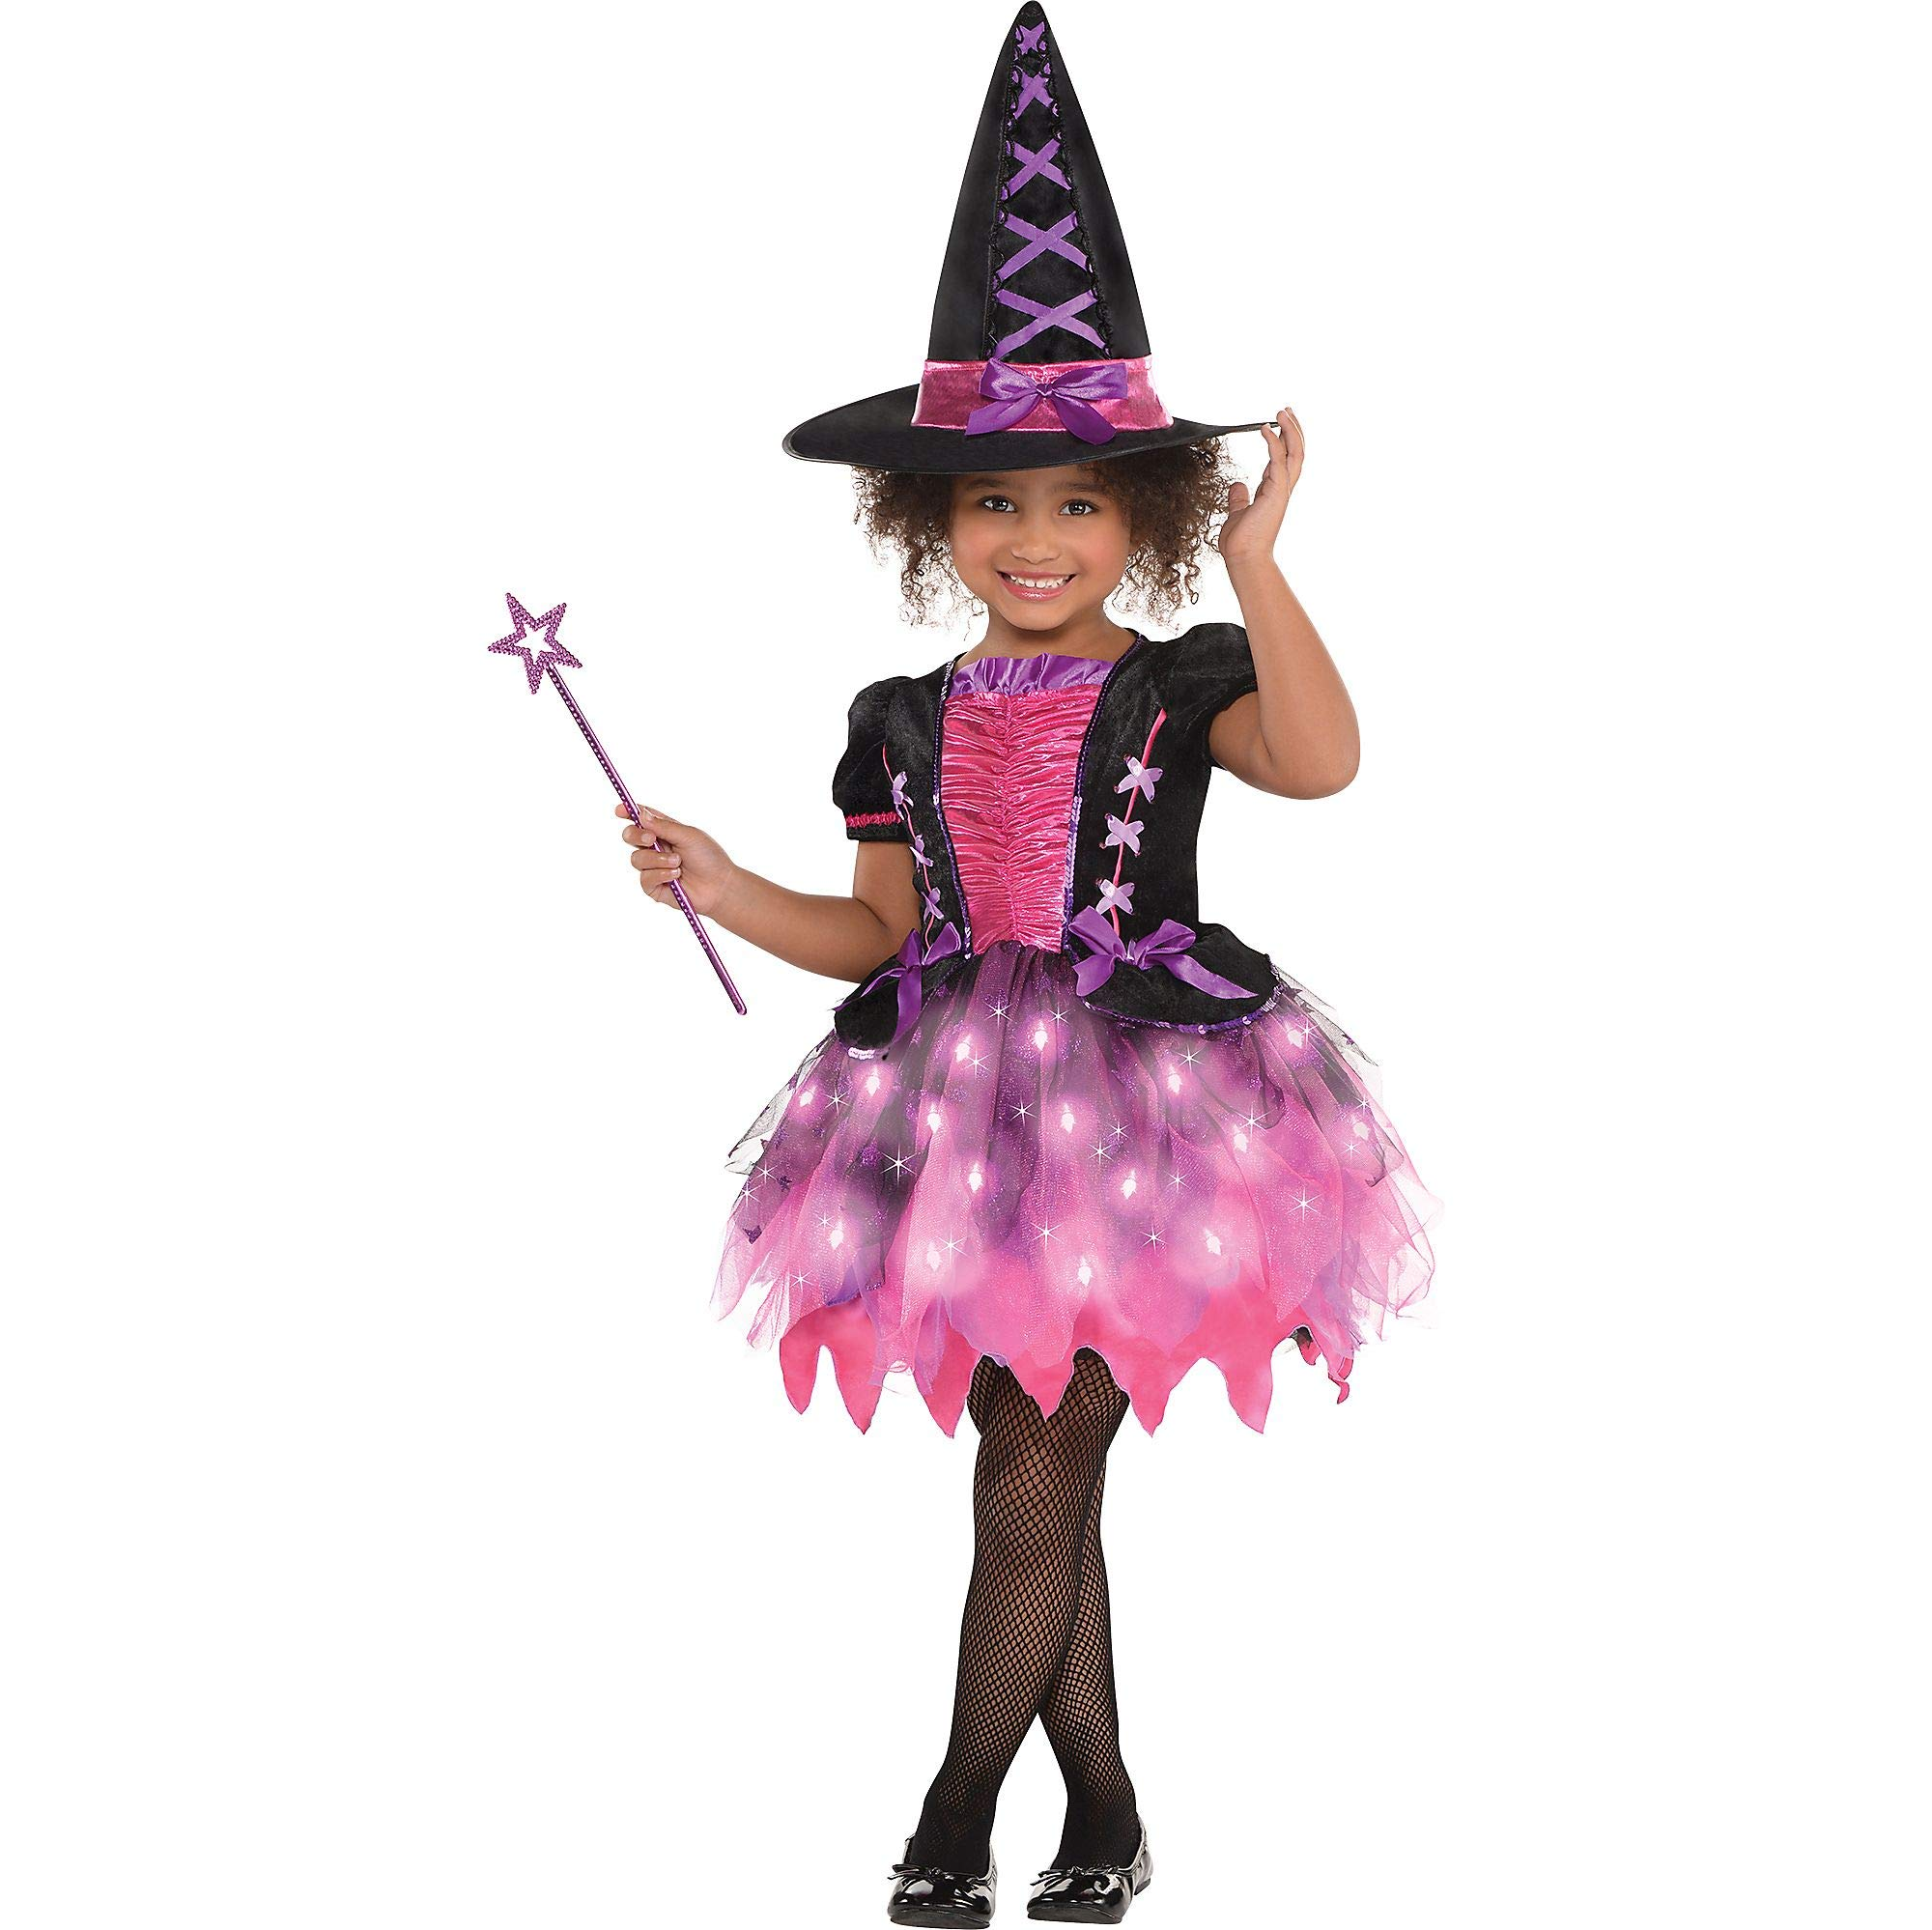 Light-Up Sparkle Witch Costume for Toddlers, Dress, Hat and Wand Included